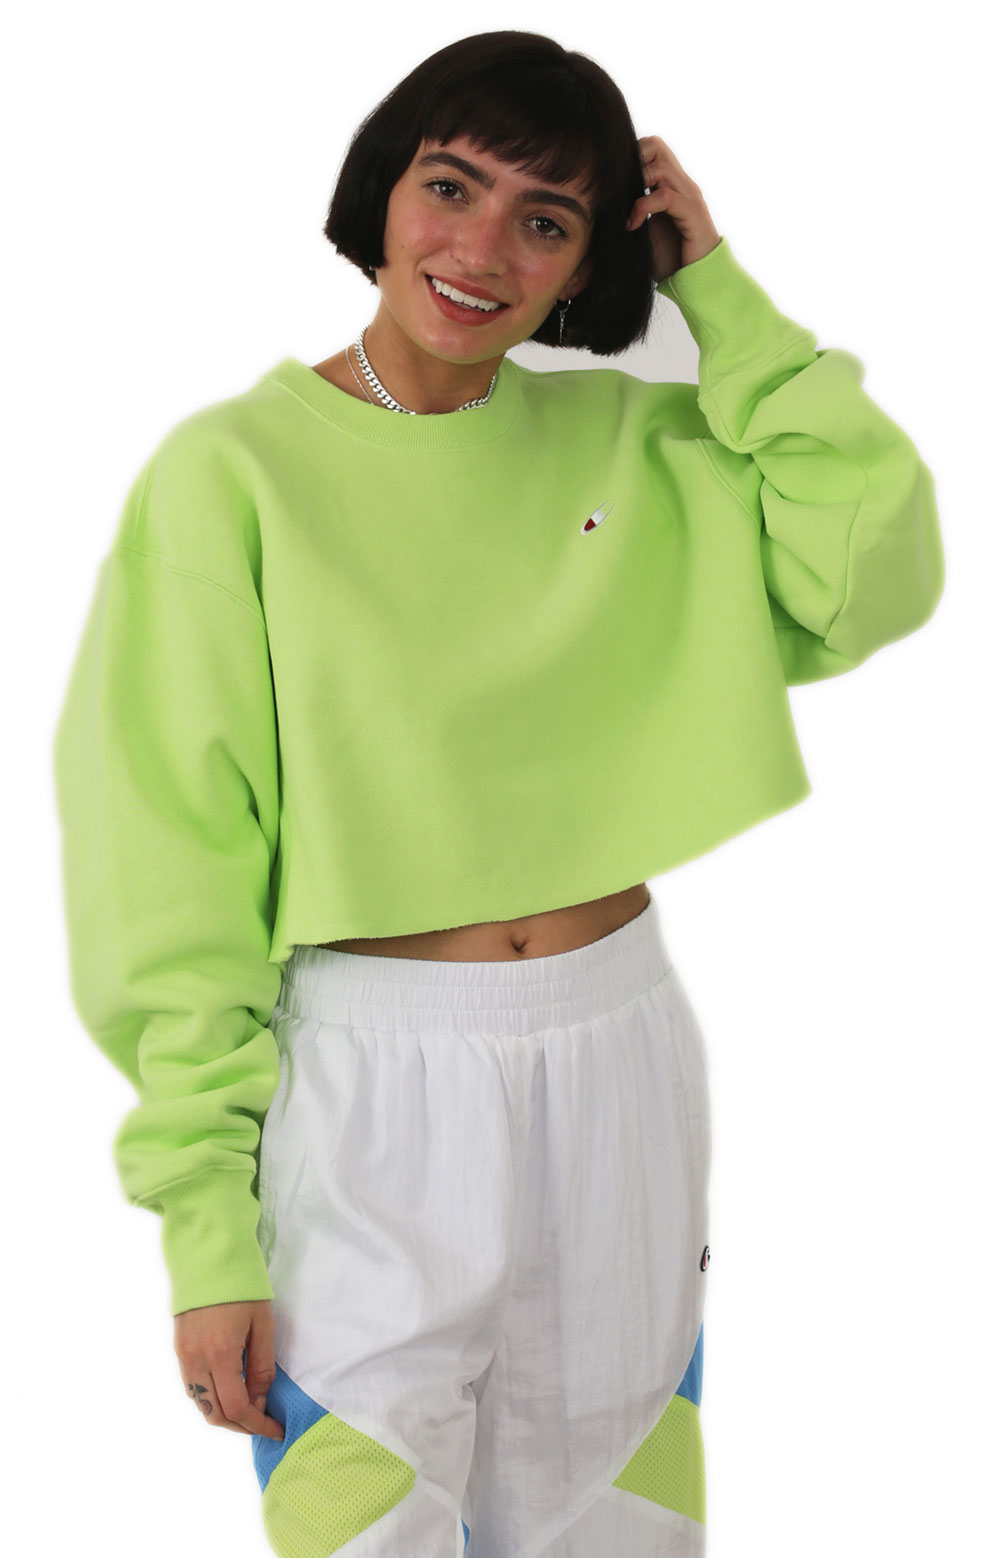 Reverse Weave Cropped Cut Off Crewneck - Chilled Mint Green